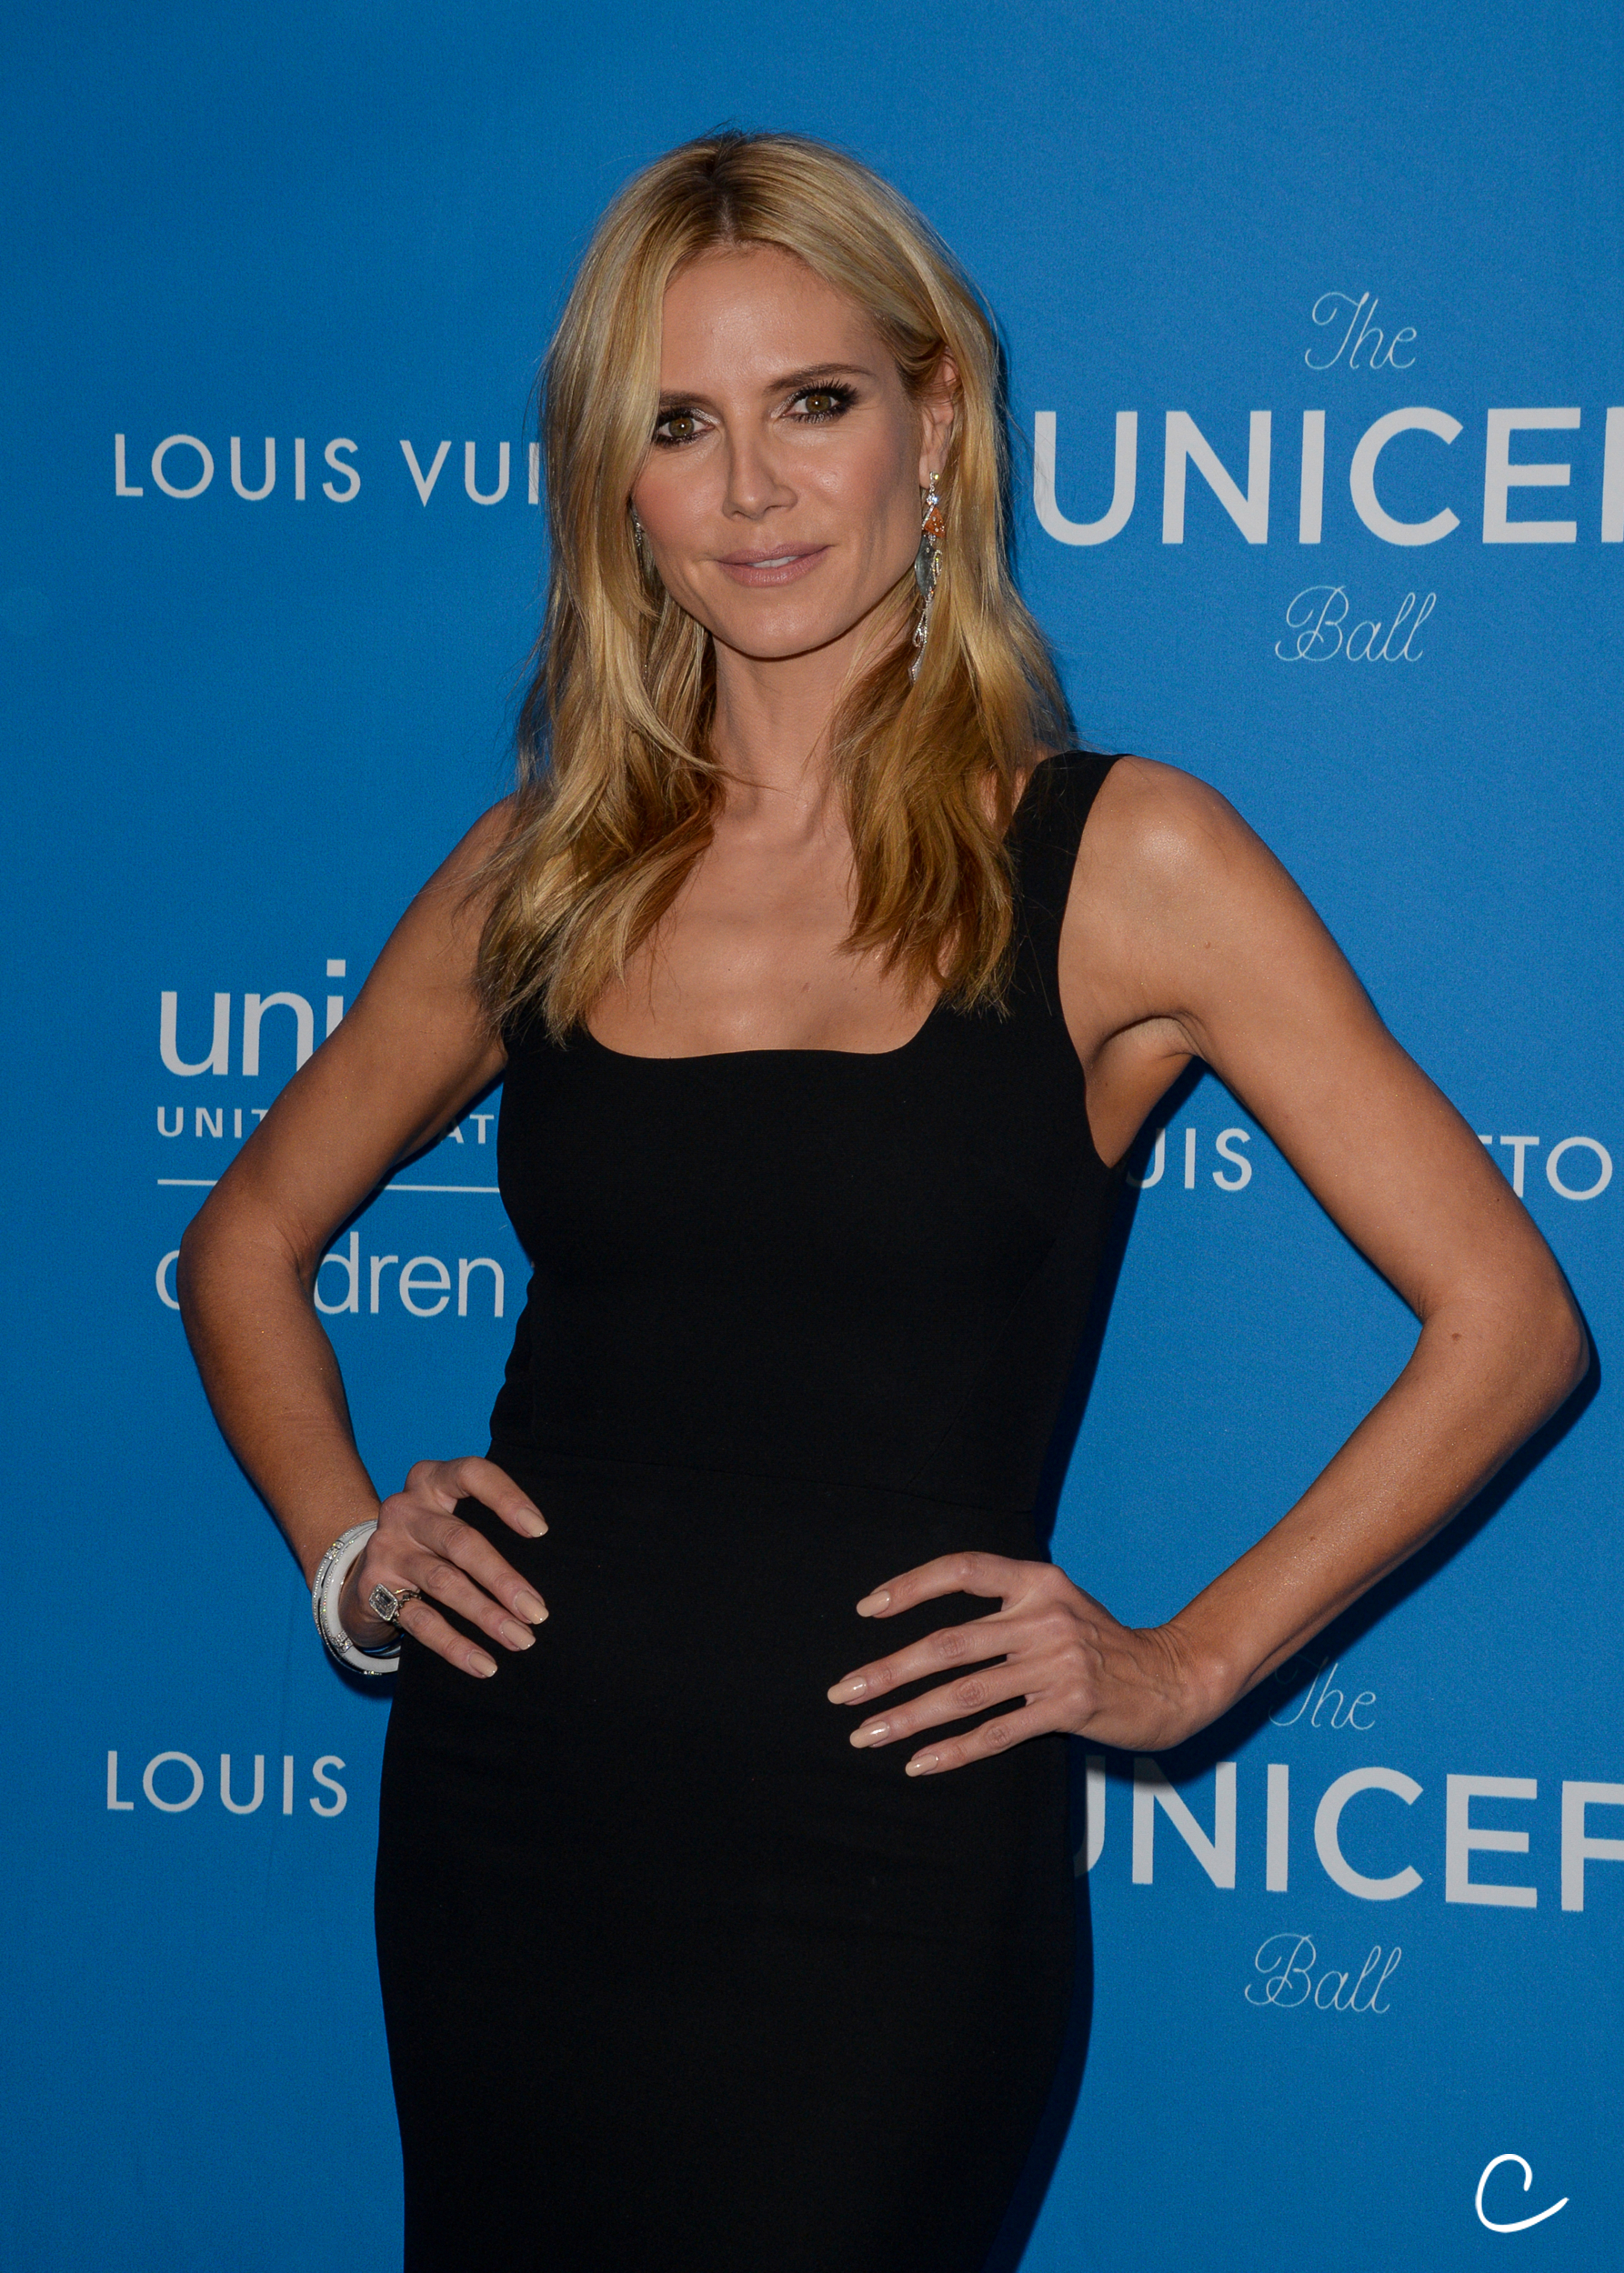 Heidi Klum attends the Sixth Annual UNICEF Ball on January 12, 2016 at the Beverly Wilshire Hotel, Beverly Hills, California. (Photo: Charlie Steffens/Gnarlyfotos)